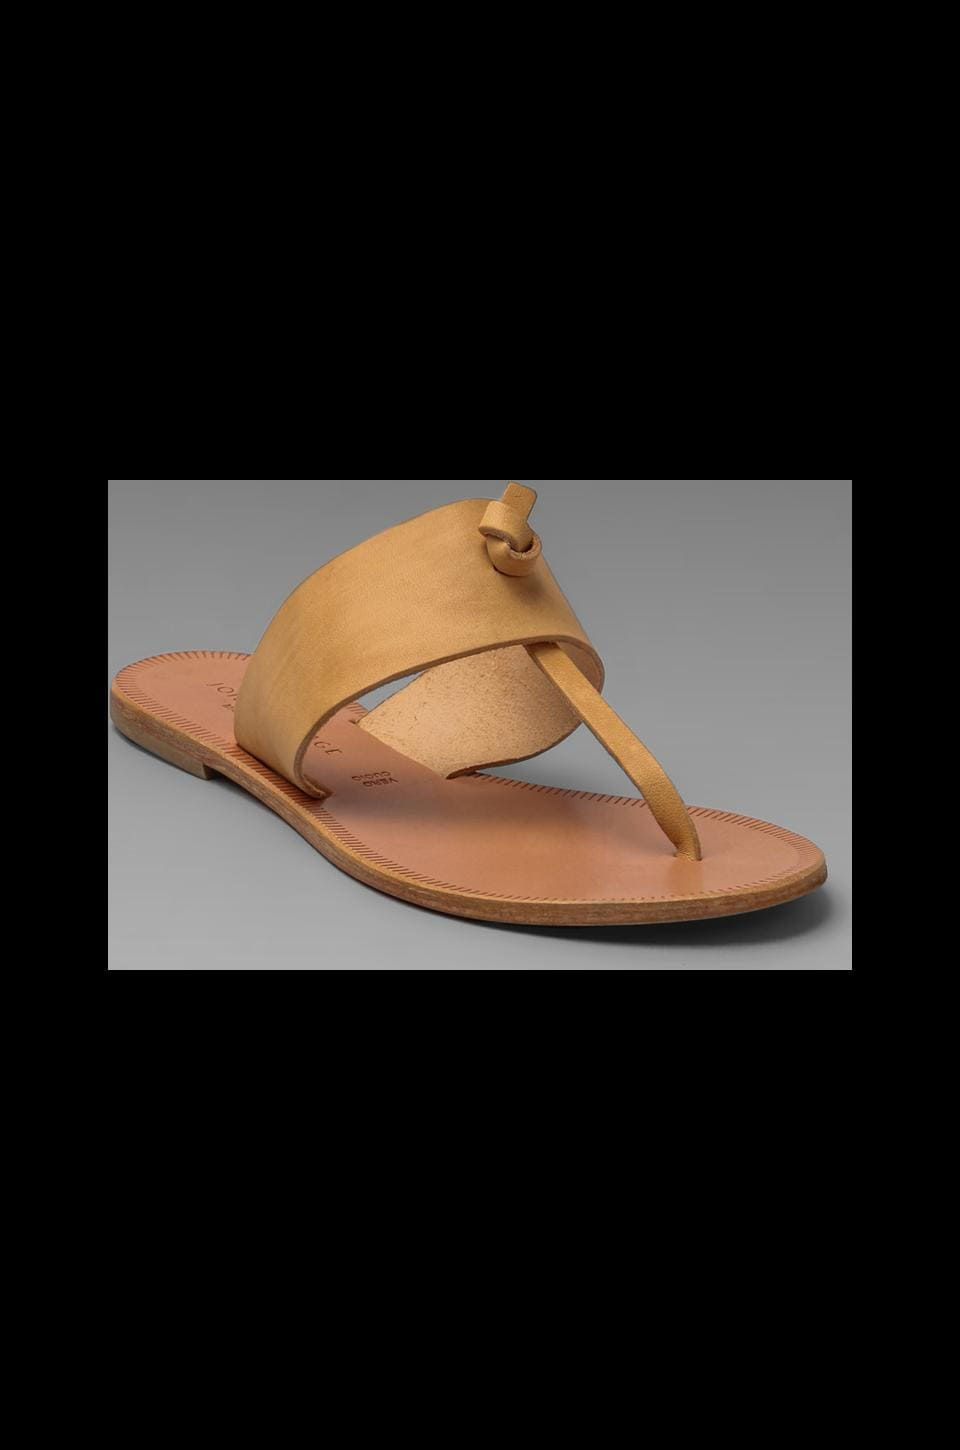 Joie Nice Sandal in Natural